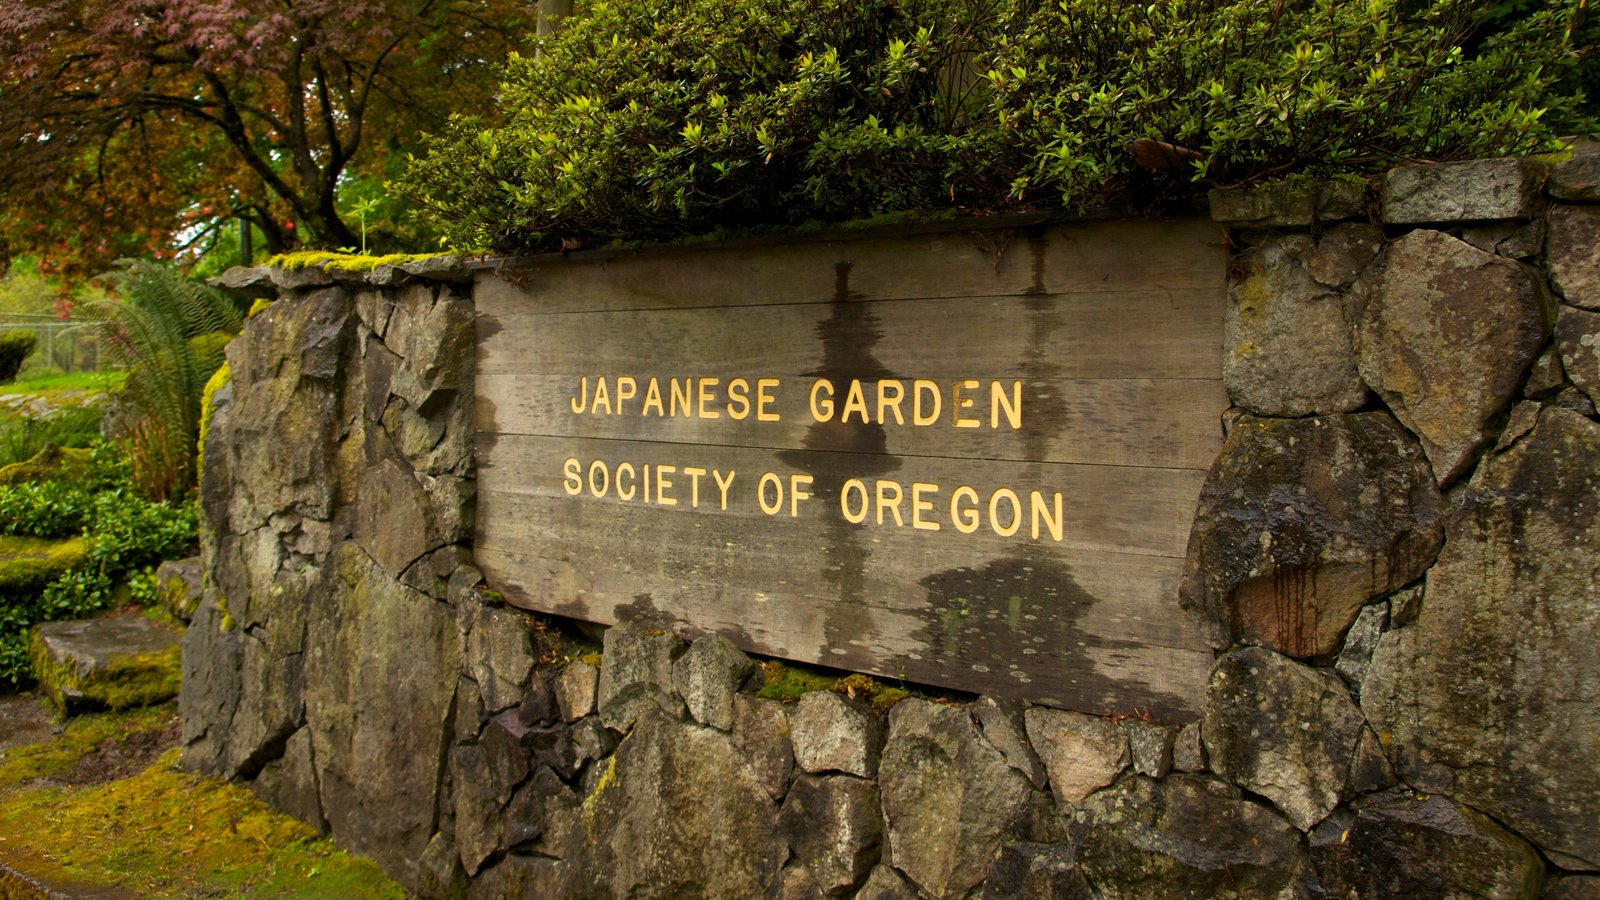 Portland Japanese Garden showing a park, signage and landscape views